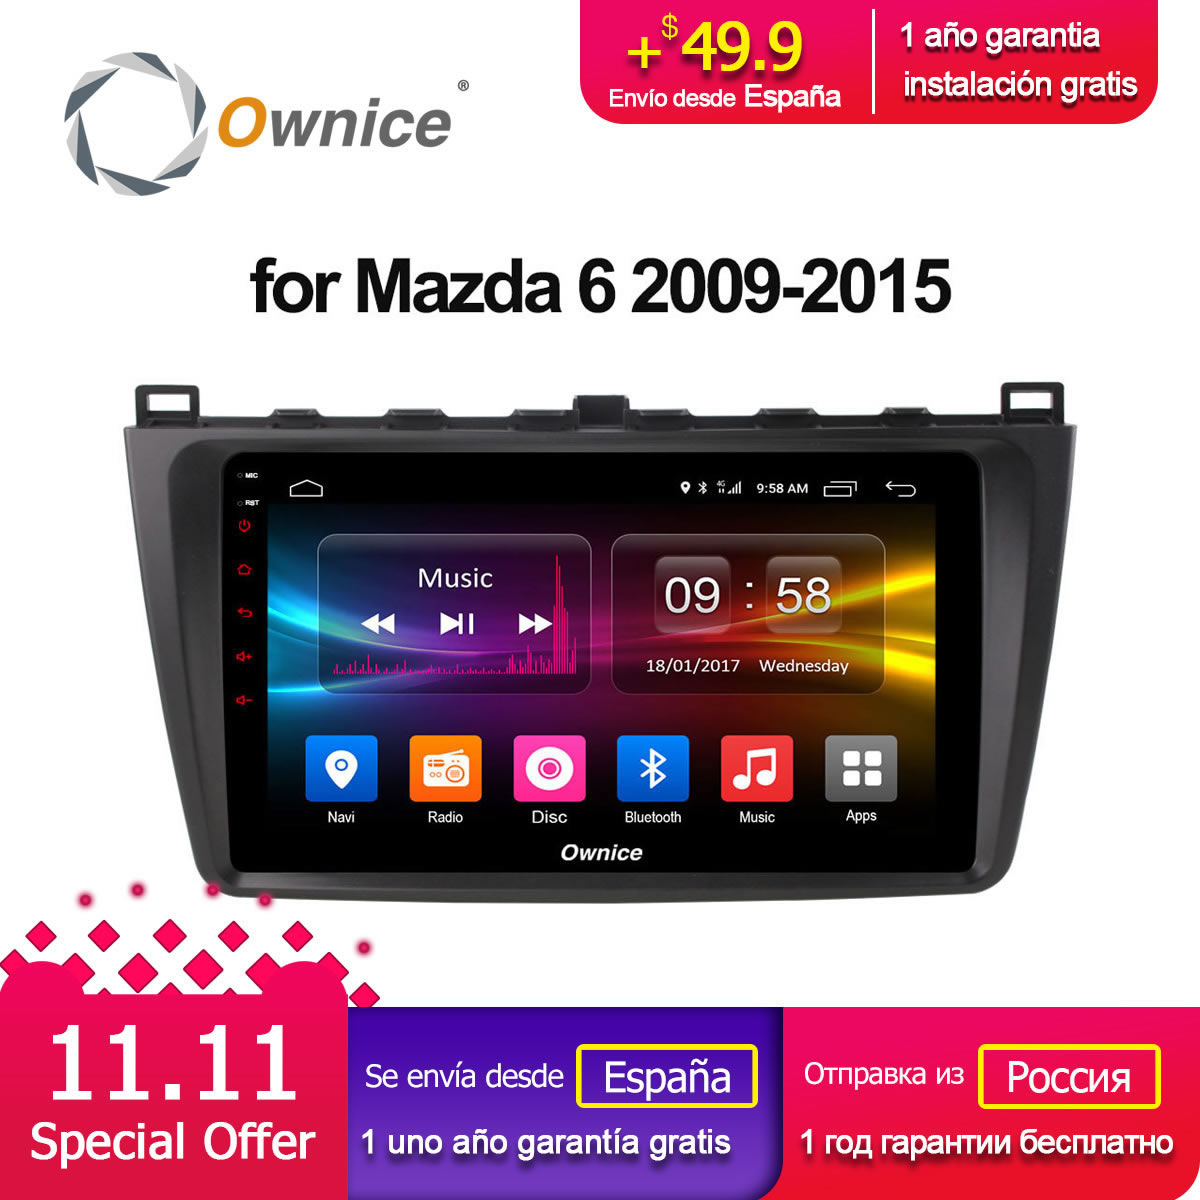 Ownice C500+ G10 Octa 8 Core Android 8.1 2G Car DVD GPS For Mazda 6 2009 - 2015 Autoradio Multimedia Audio Stereo 2G RAM 4G LTE ownice c500 octa core 10 1 android gps car radio multimedia player 2g 32g for skoda octavia 2014 2015 2016 2017 dvd 4g lte pc